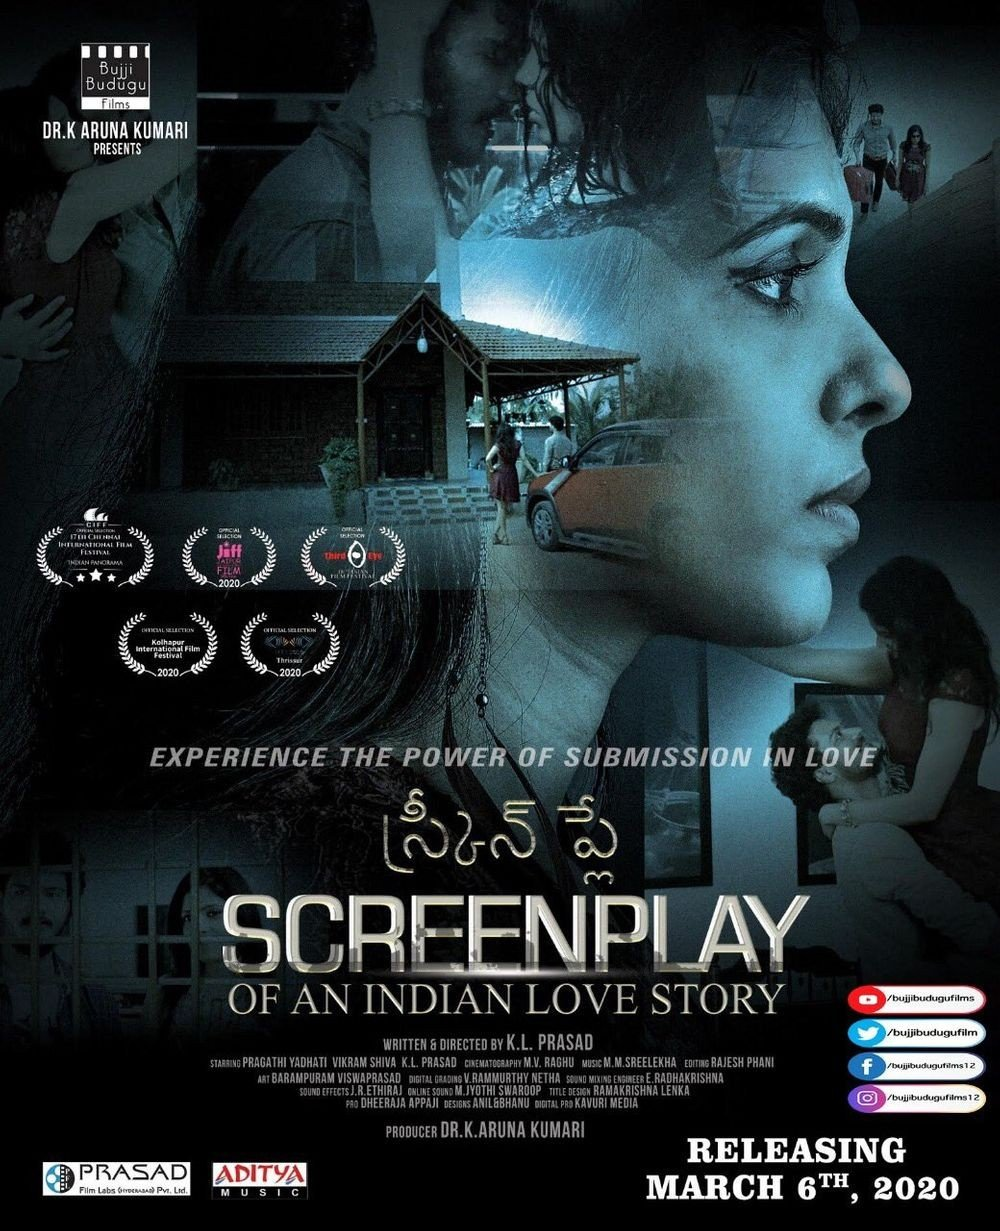 1-<p>Screenplay of an Indian Love Story</p>